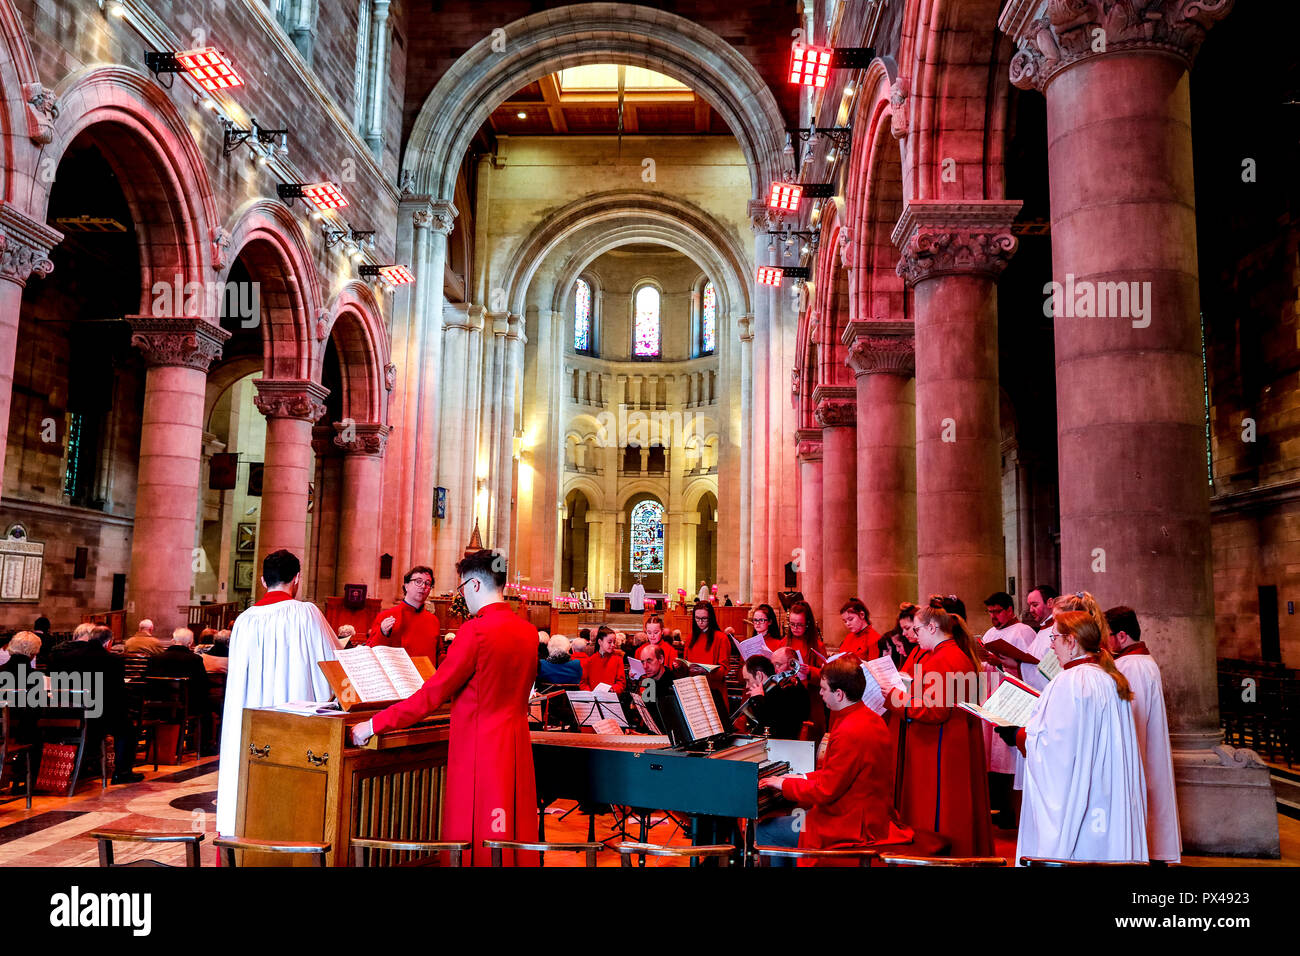 St Ann's Belfast protestant cathedral, Northern Ireland. Sunday service. Choir. Ulster, U.K. - Stock Image